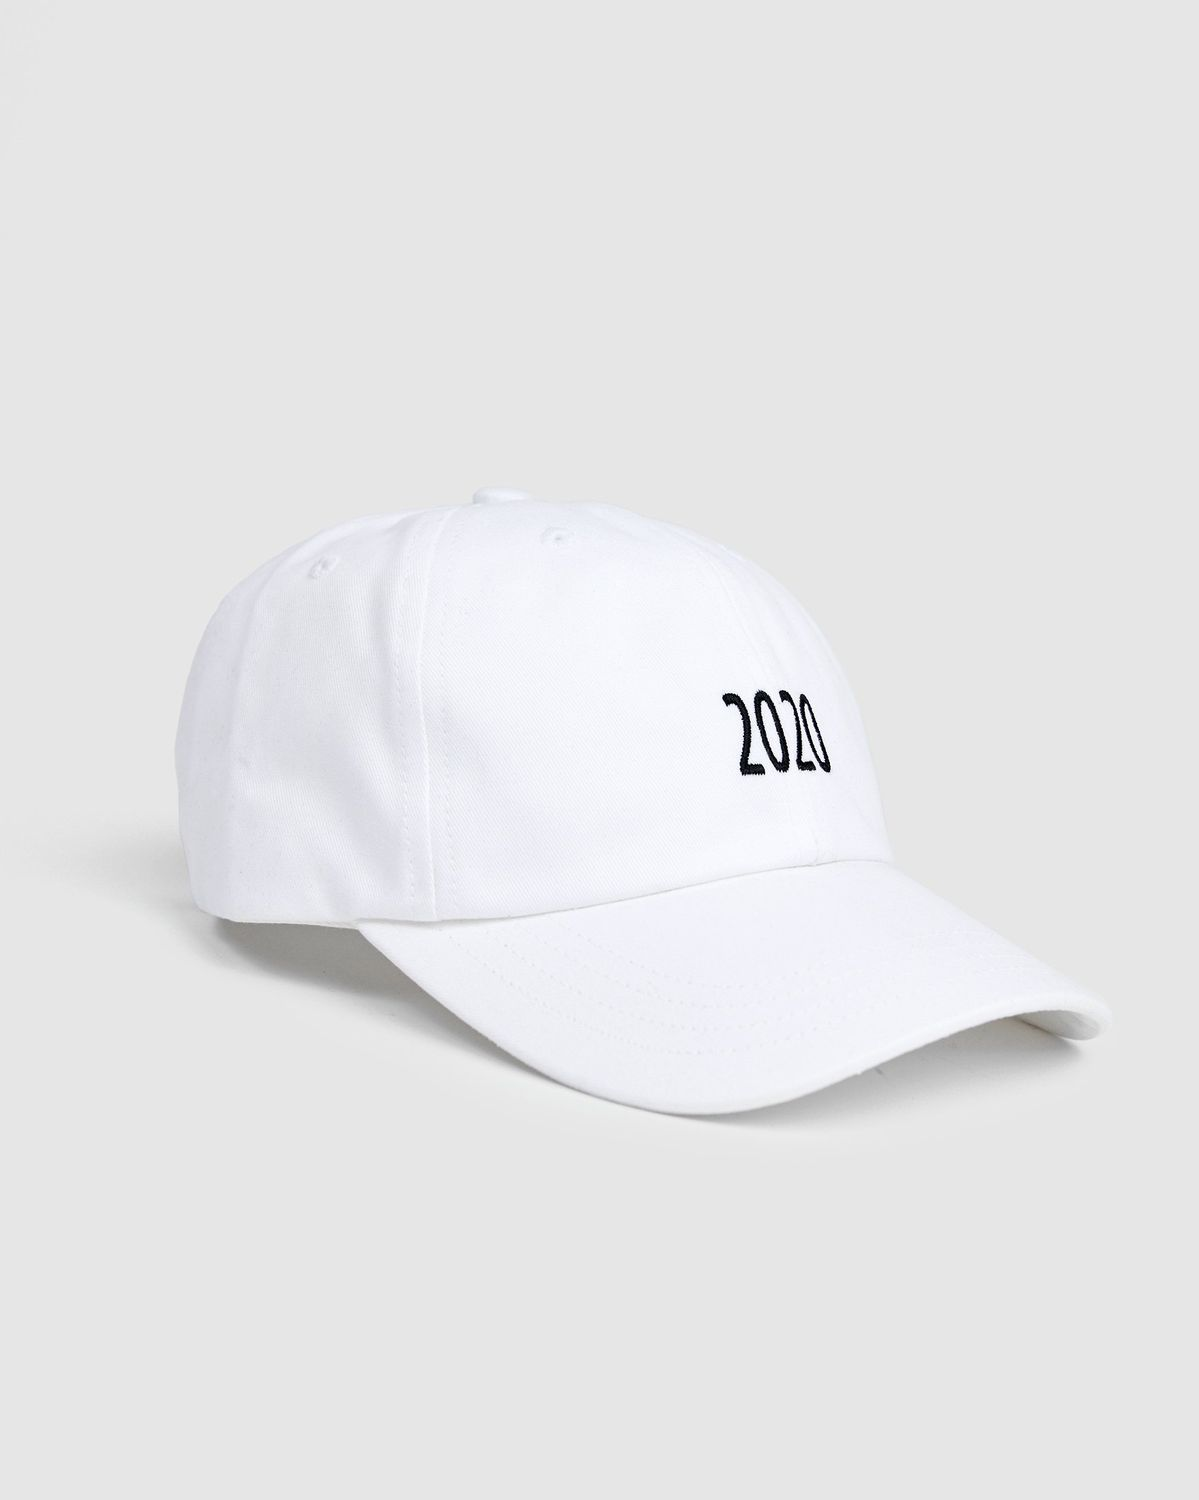 This Never Happened - 2020 Cap White - Image 4